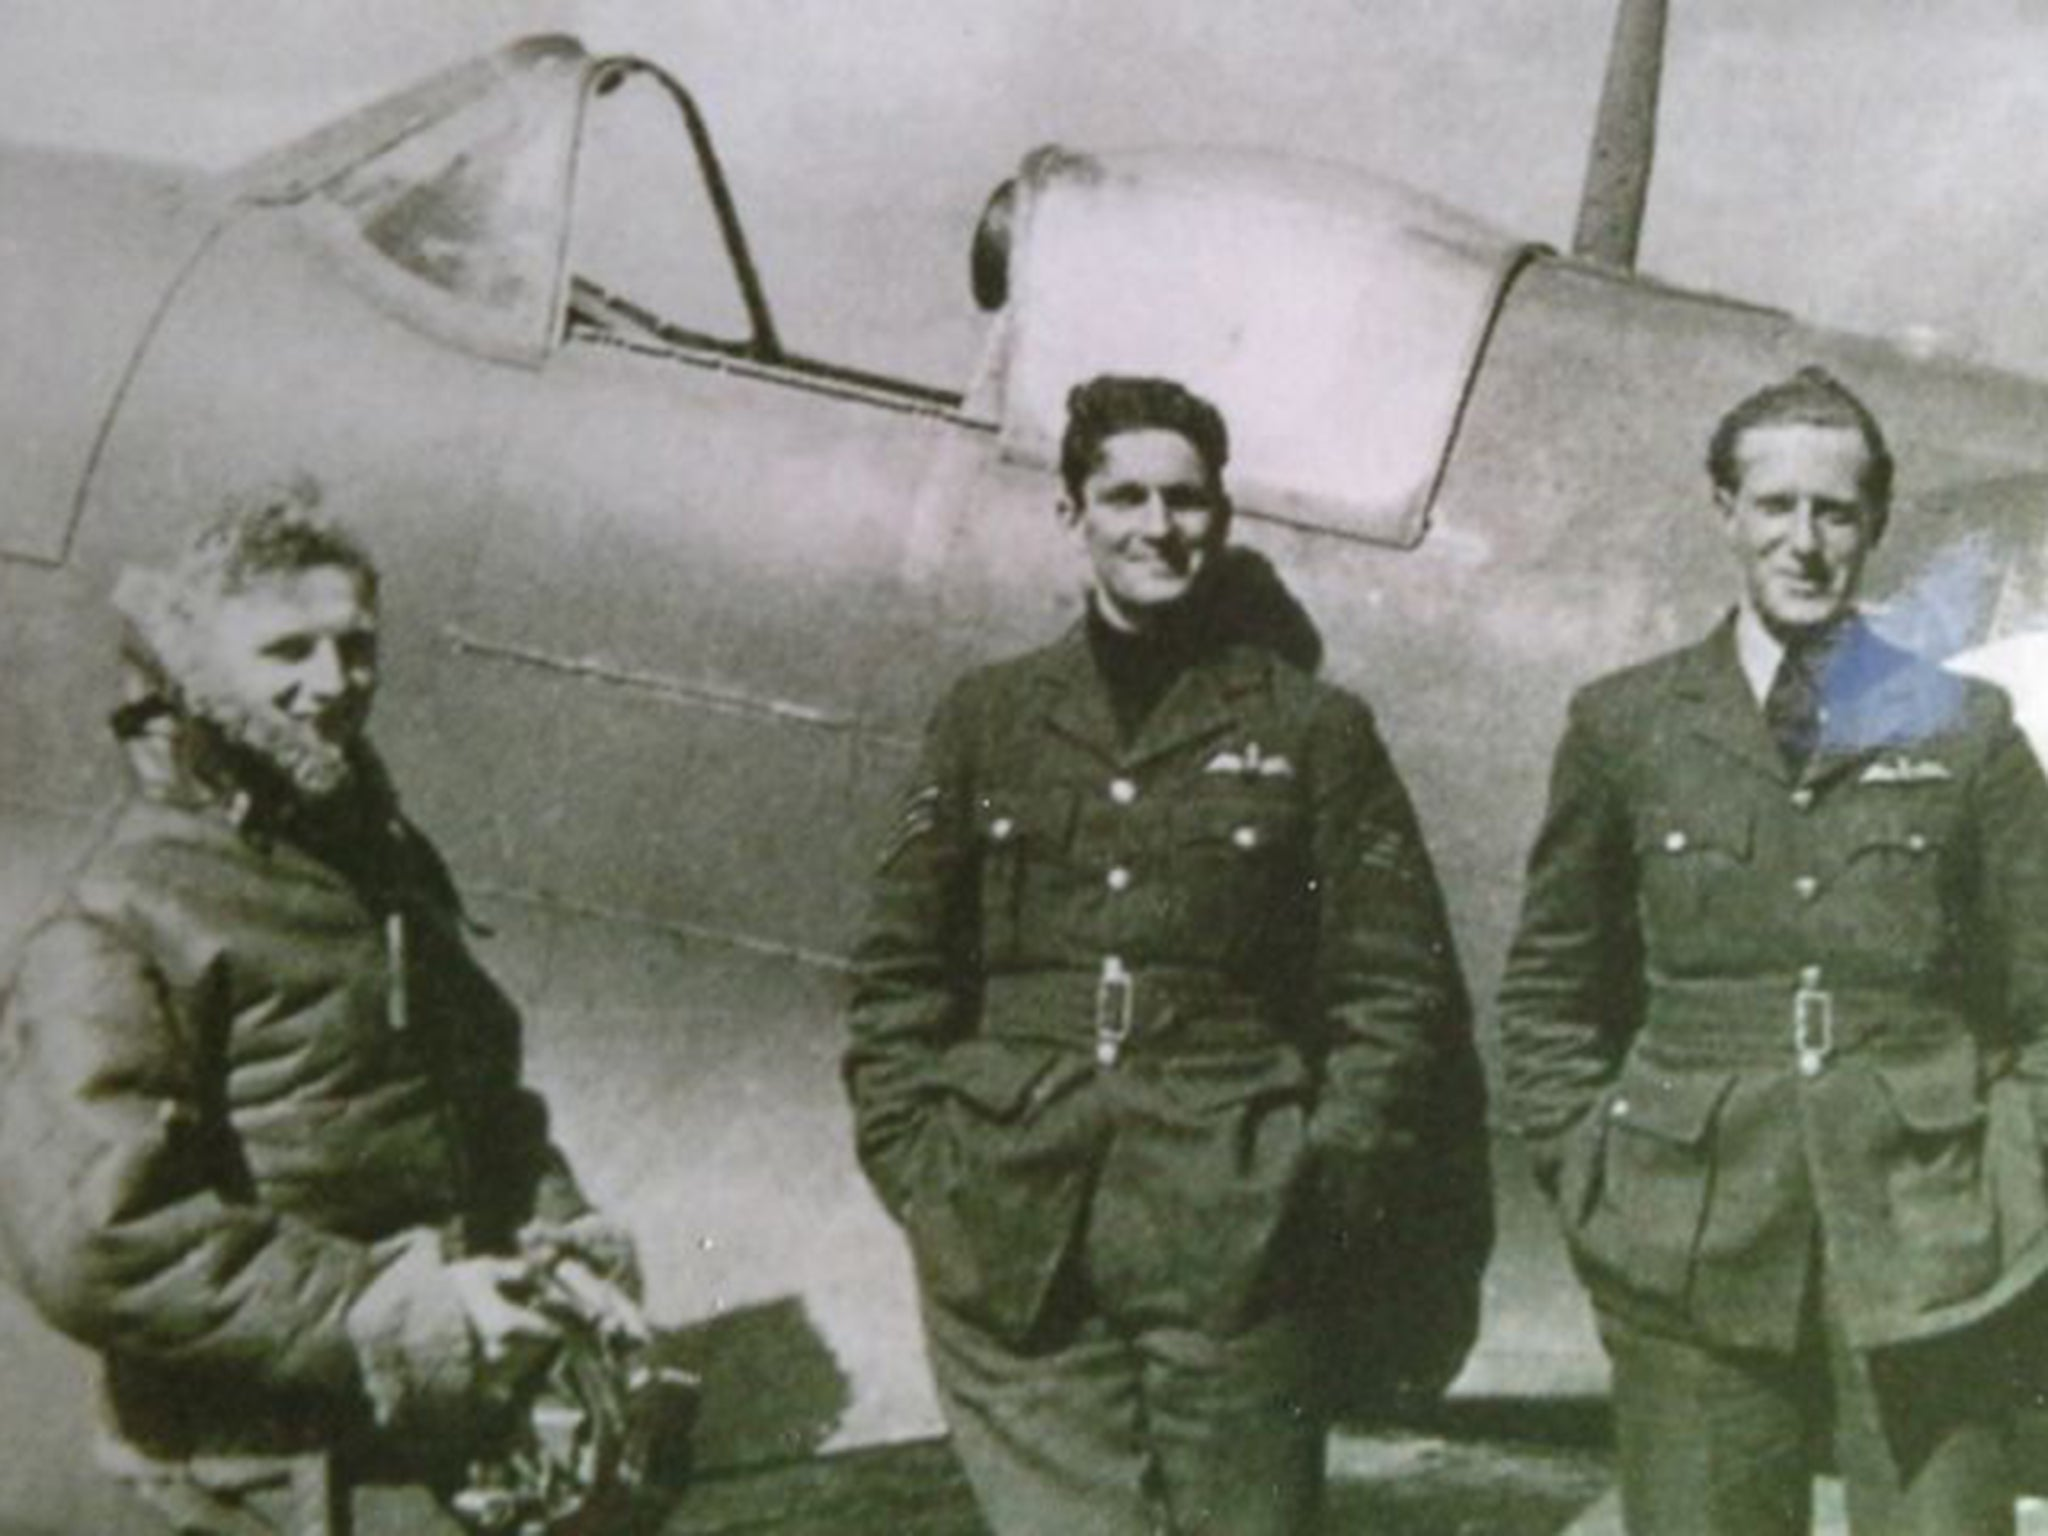 Allan Wright: the award-winning RAF ace recognised for his death-defying sorties during the Battle of Britain